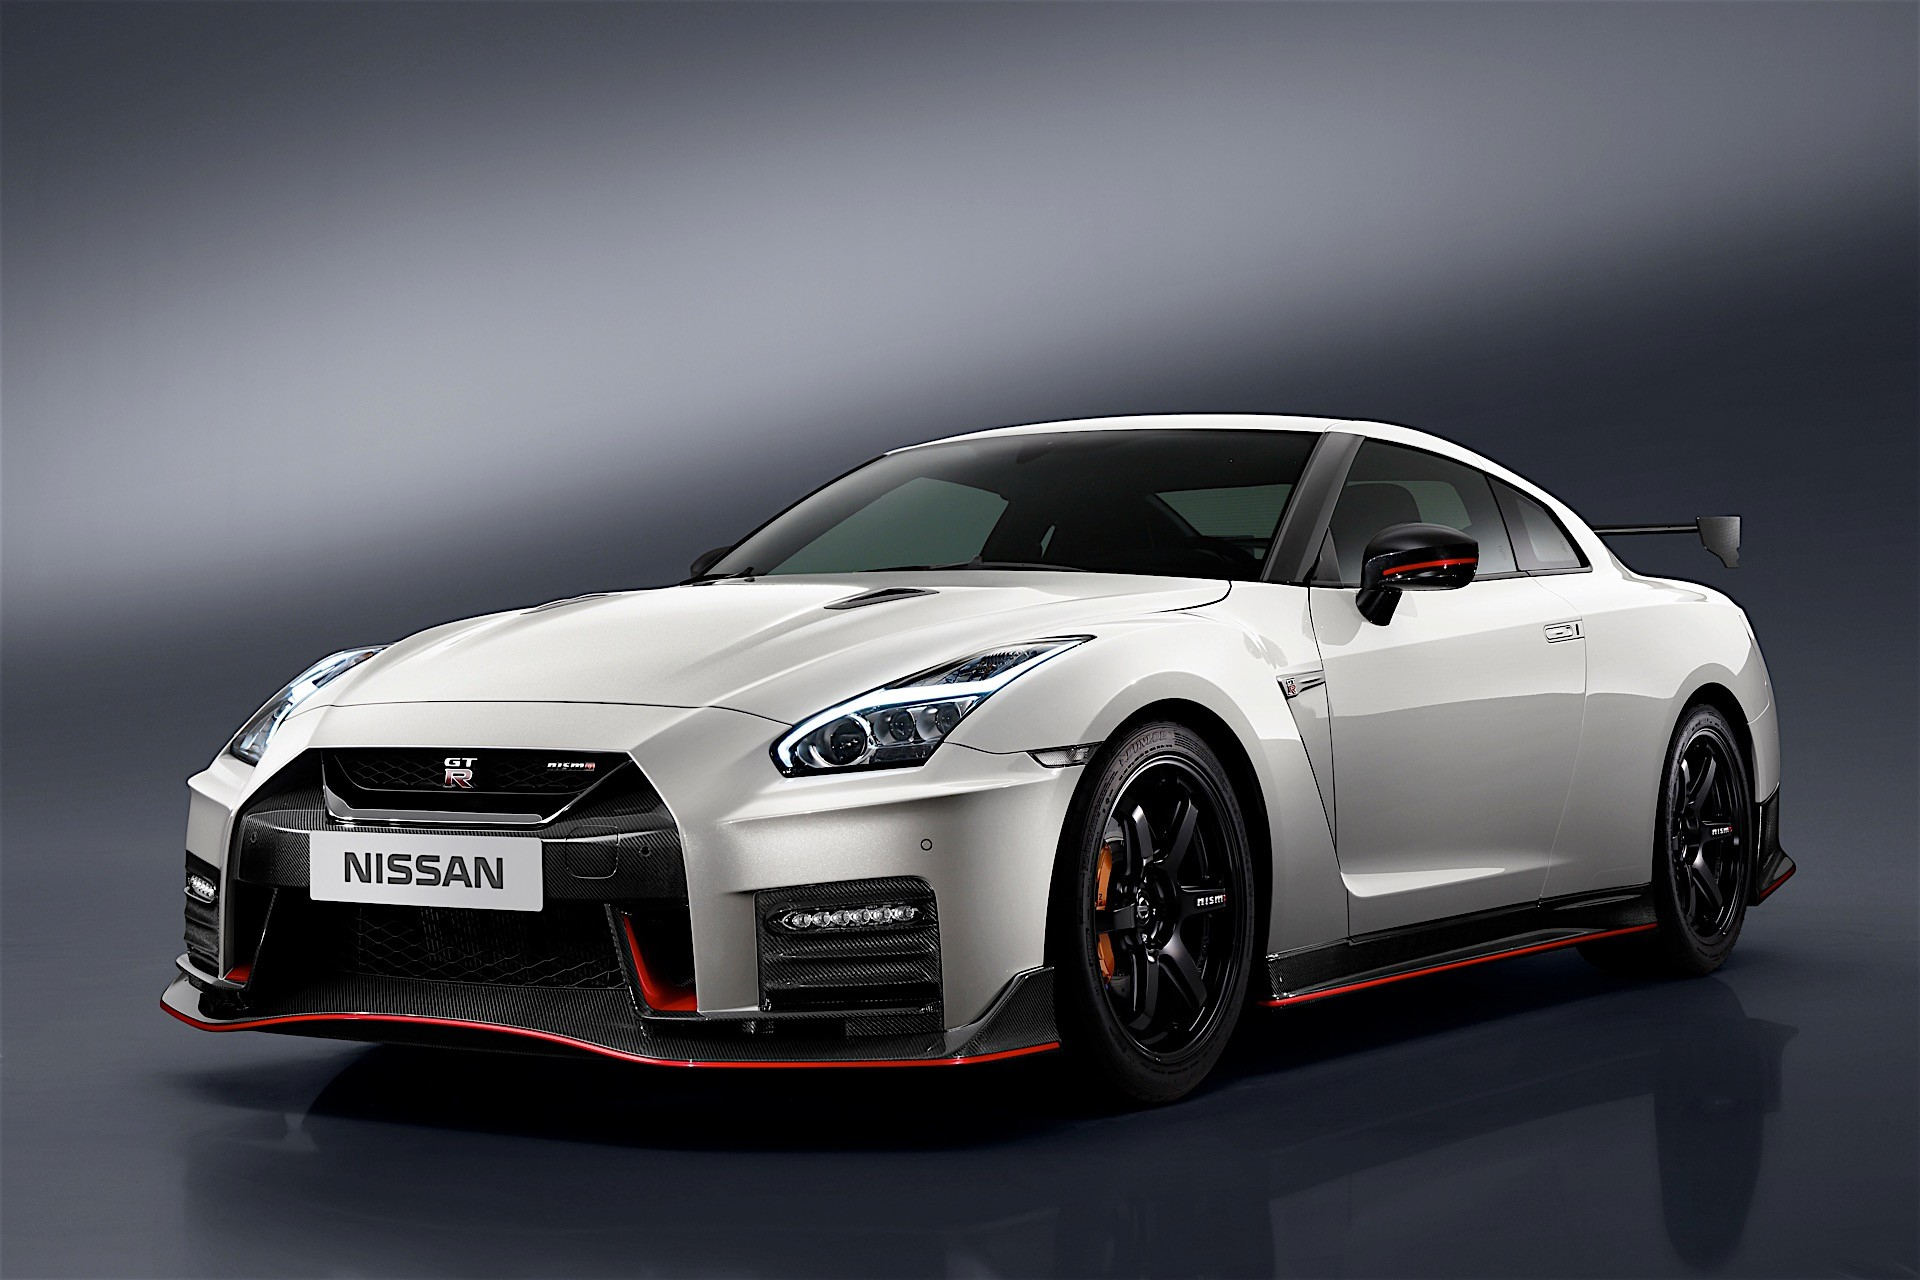 Patrol Nismo >> Nissan Unveils 2017 GT-R Nismo At Nurburgring, Comes With 600 HP - autoevolution